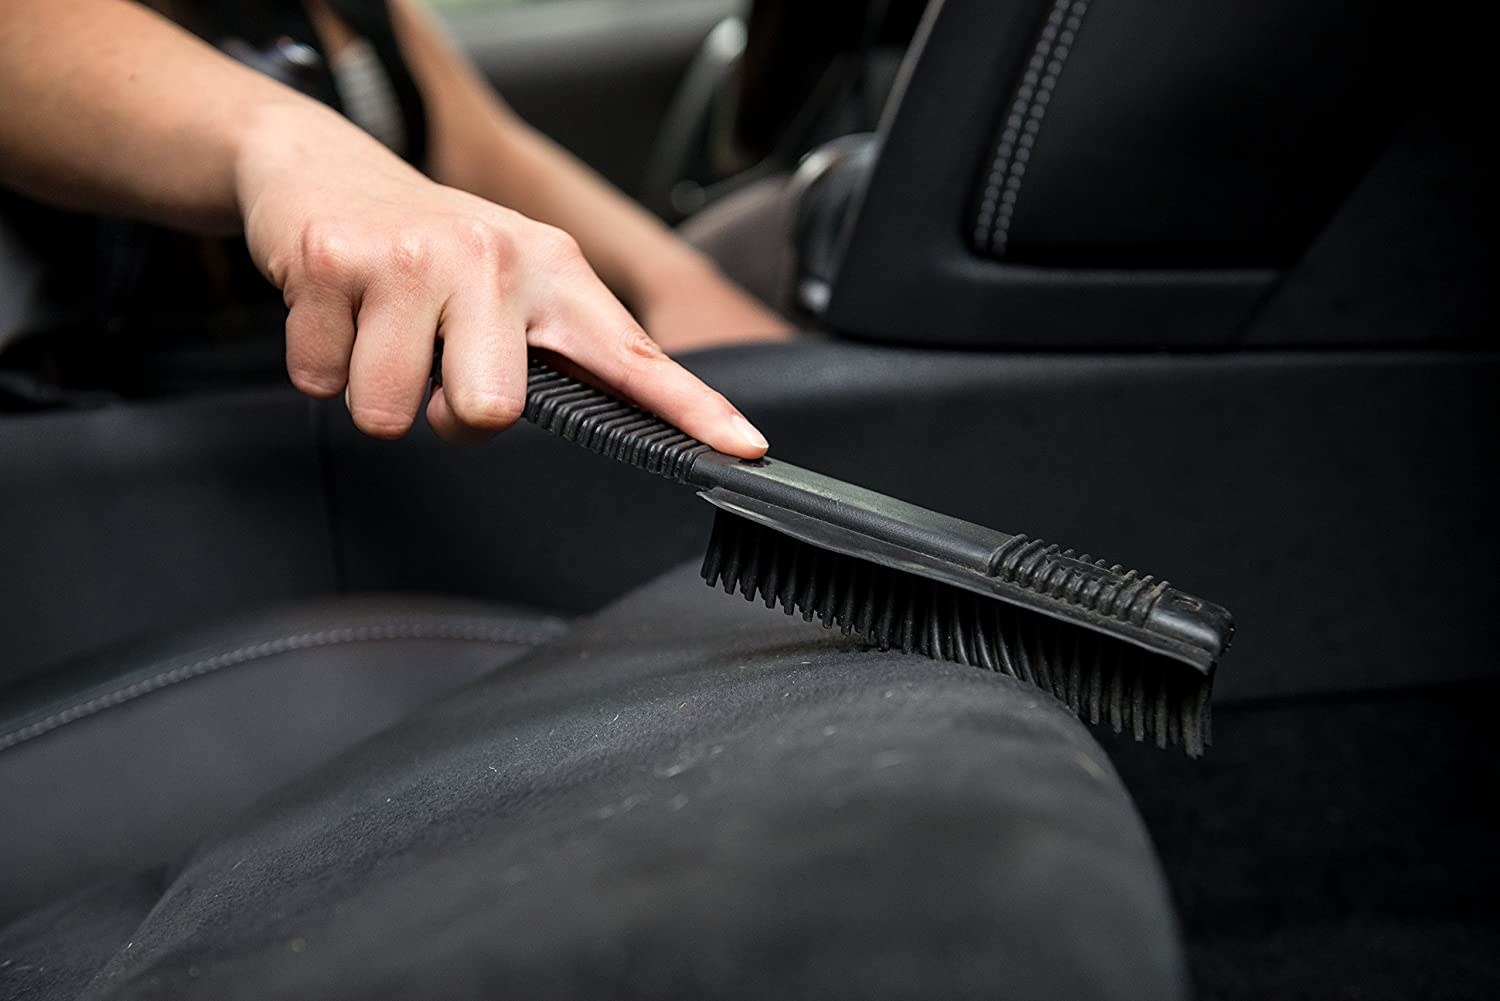 A close up of a person using the brush on dusty car seats